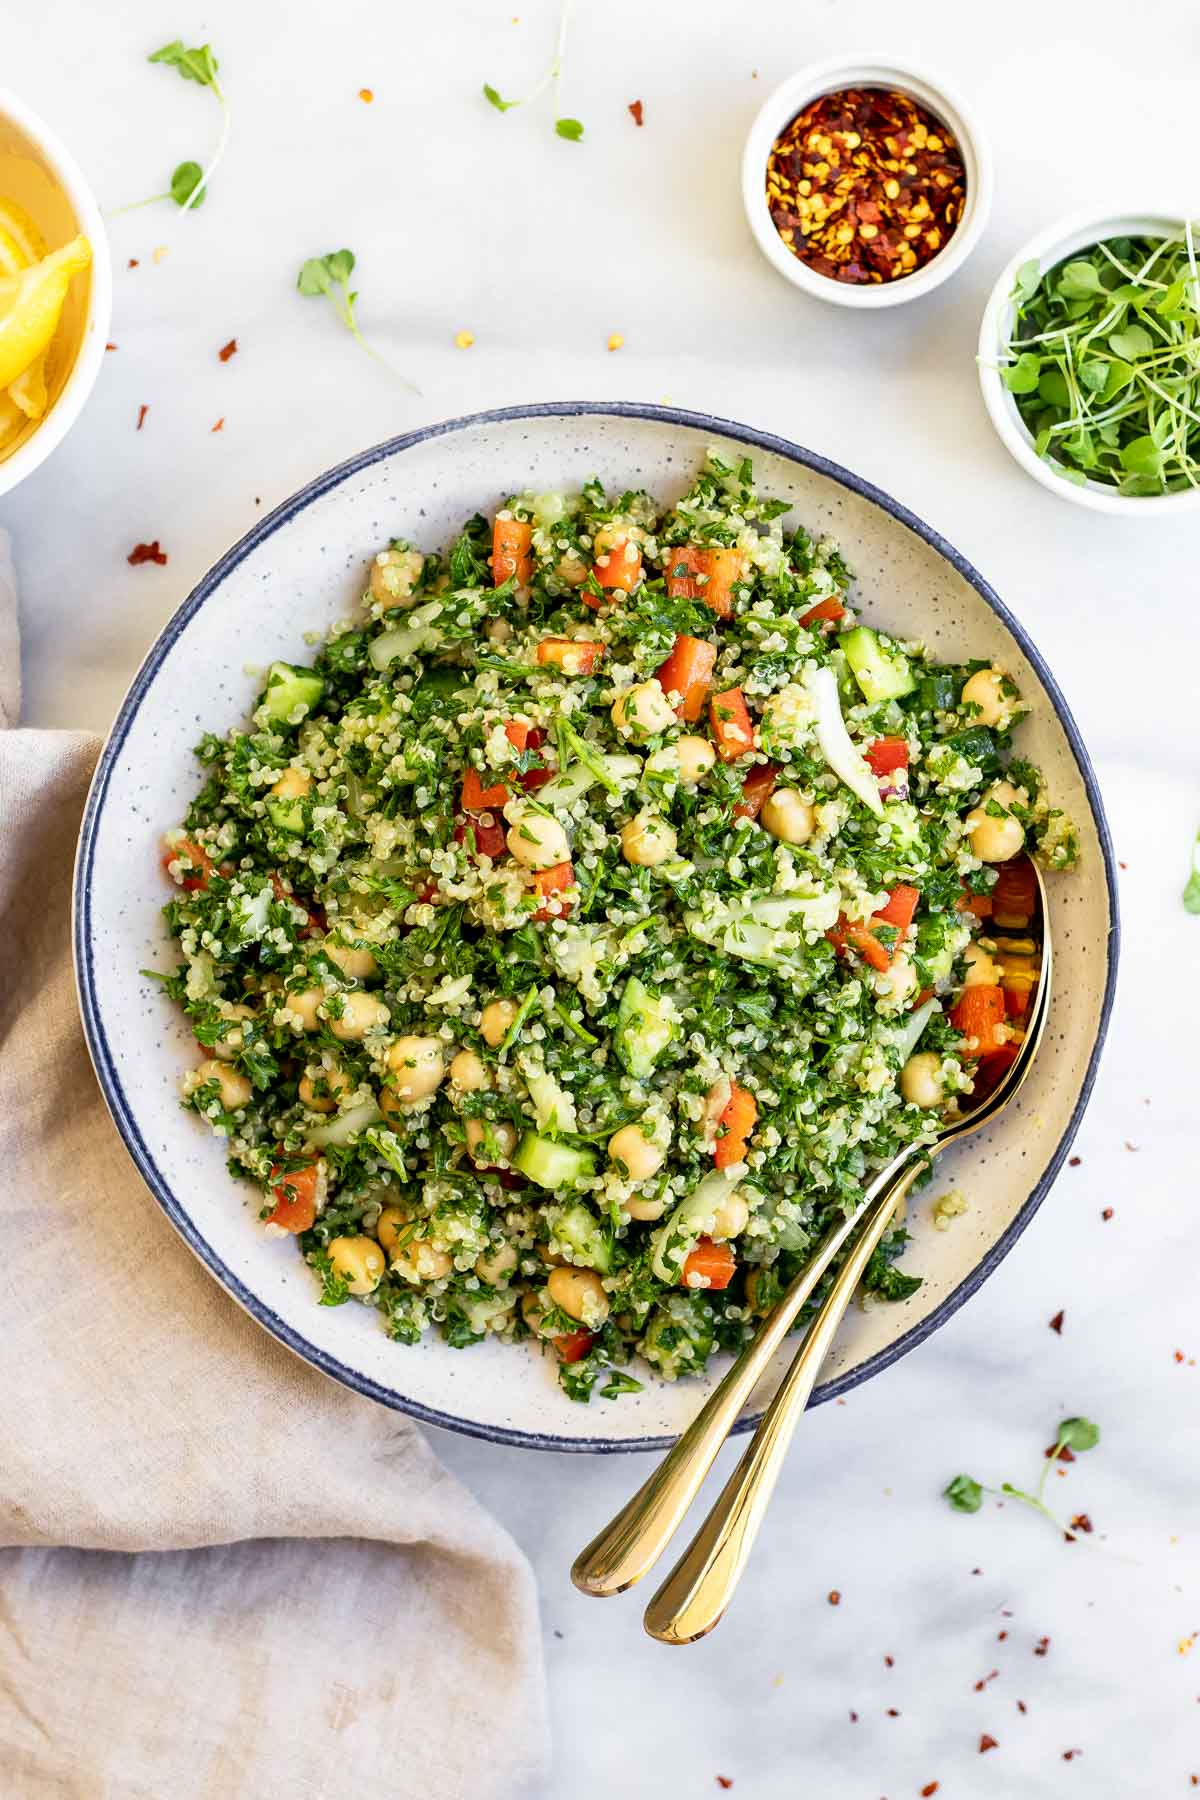 Gluten free quinoa tabbouleh salad in a large blue bowl.